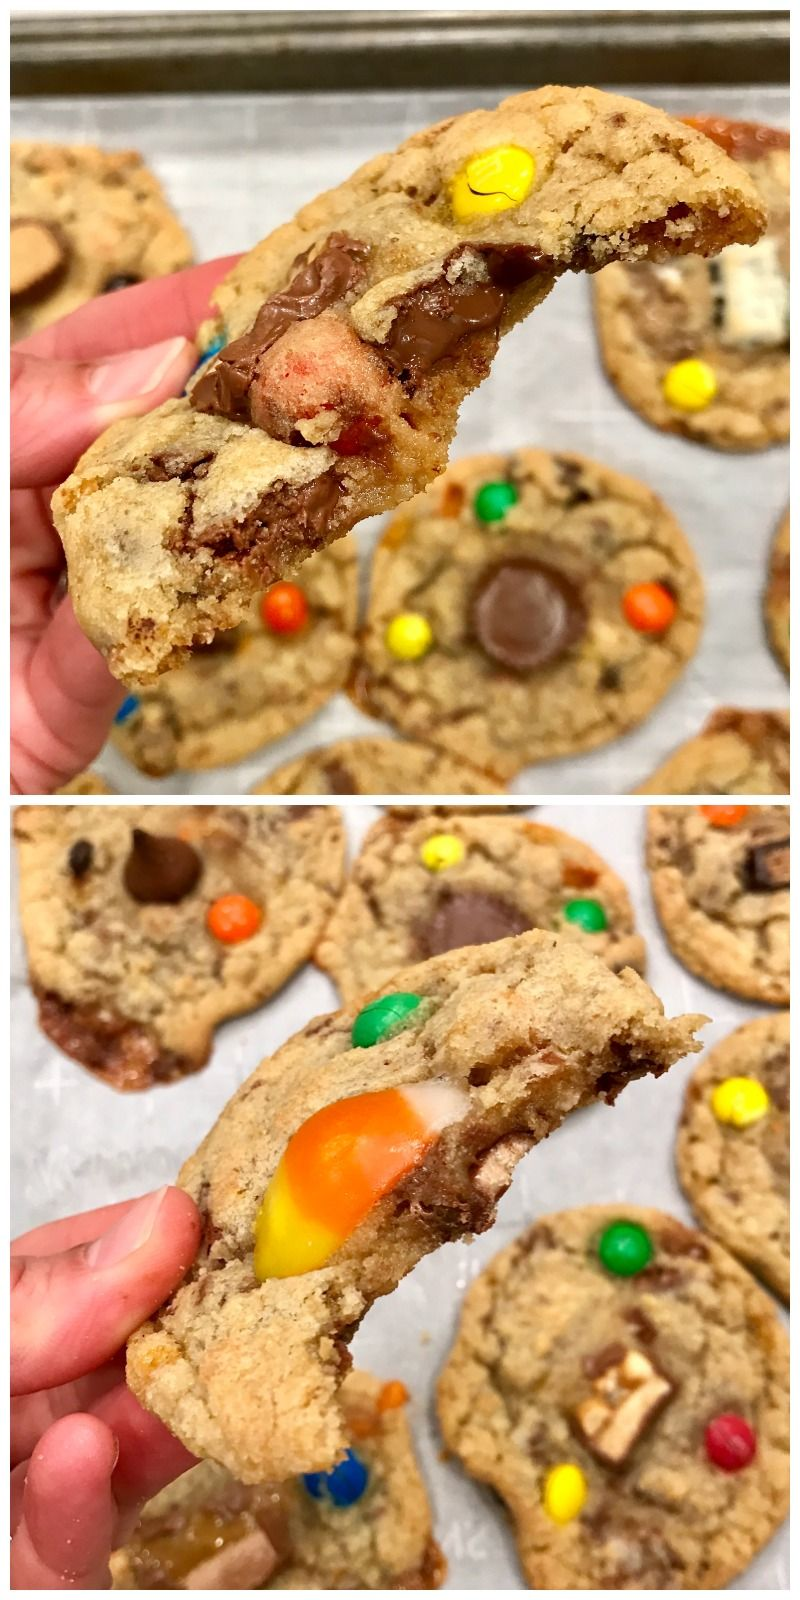 Leftover Halloween Candy Cookie Dough The BakerMama